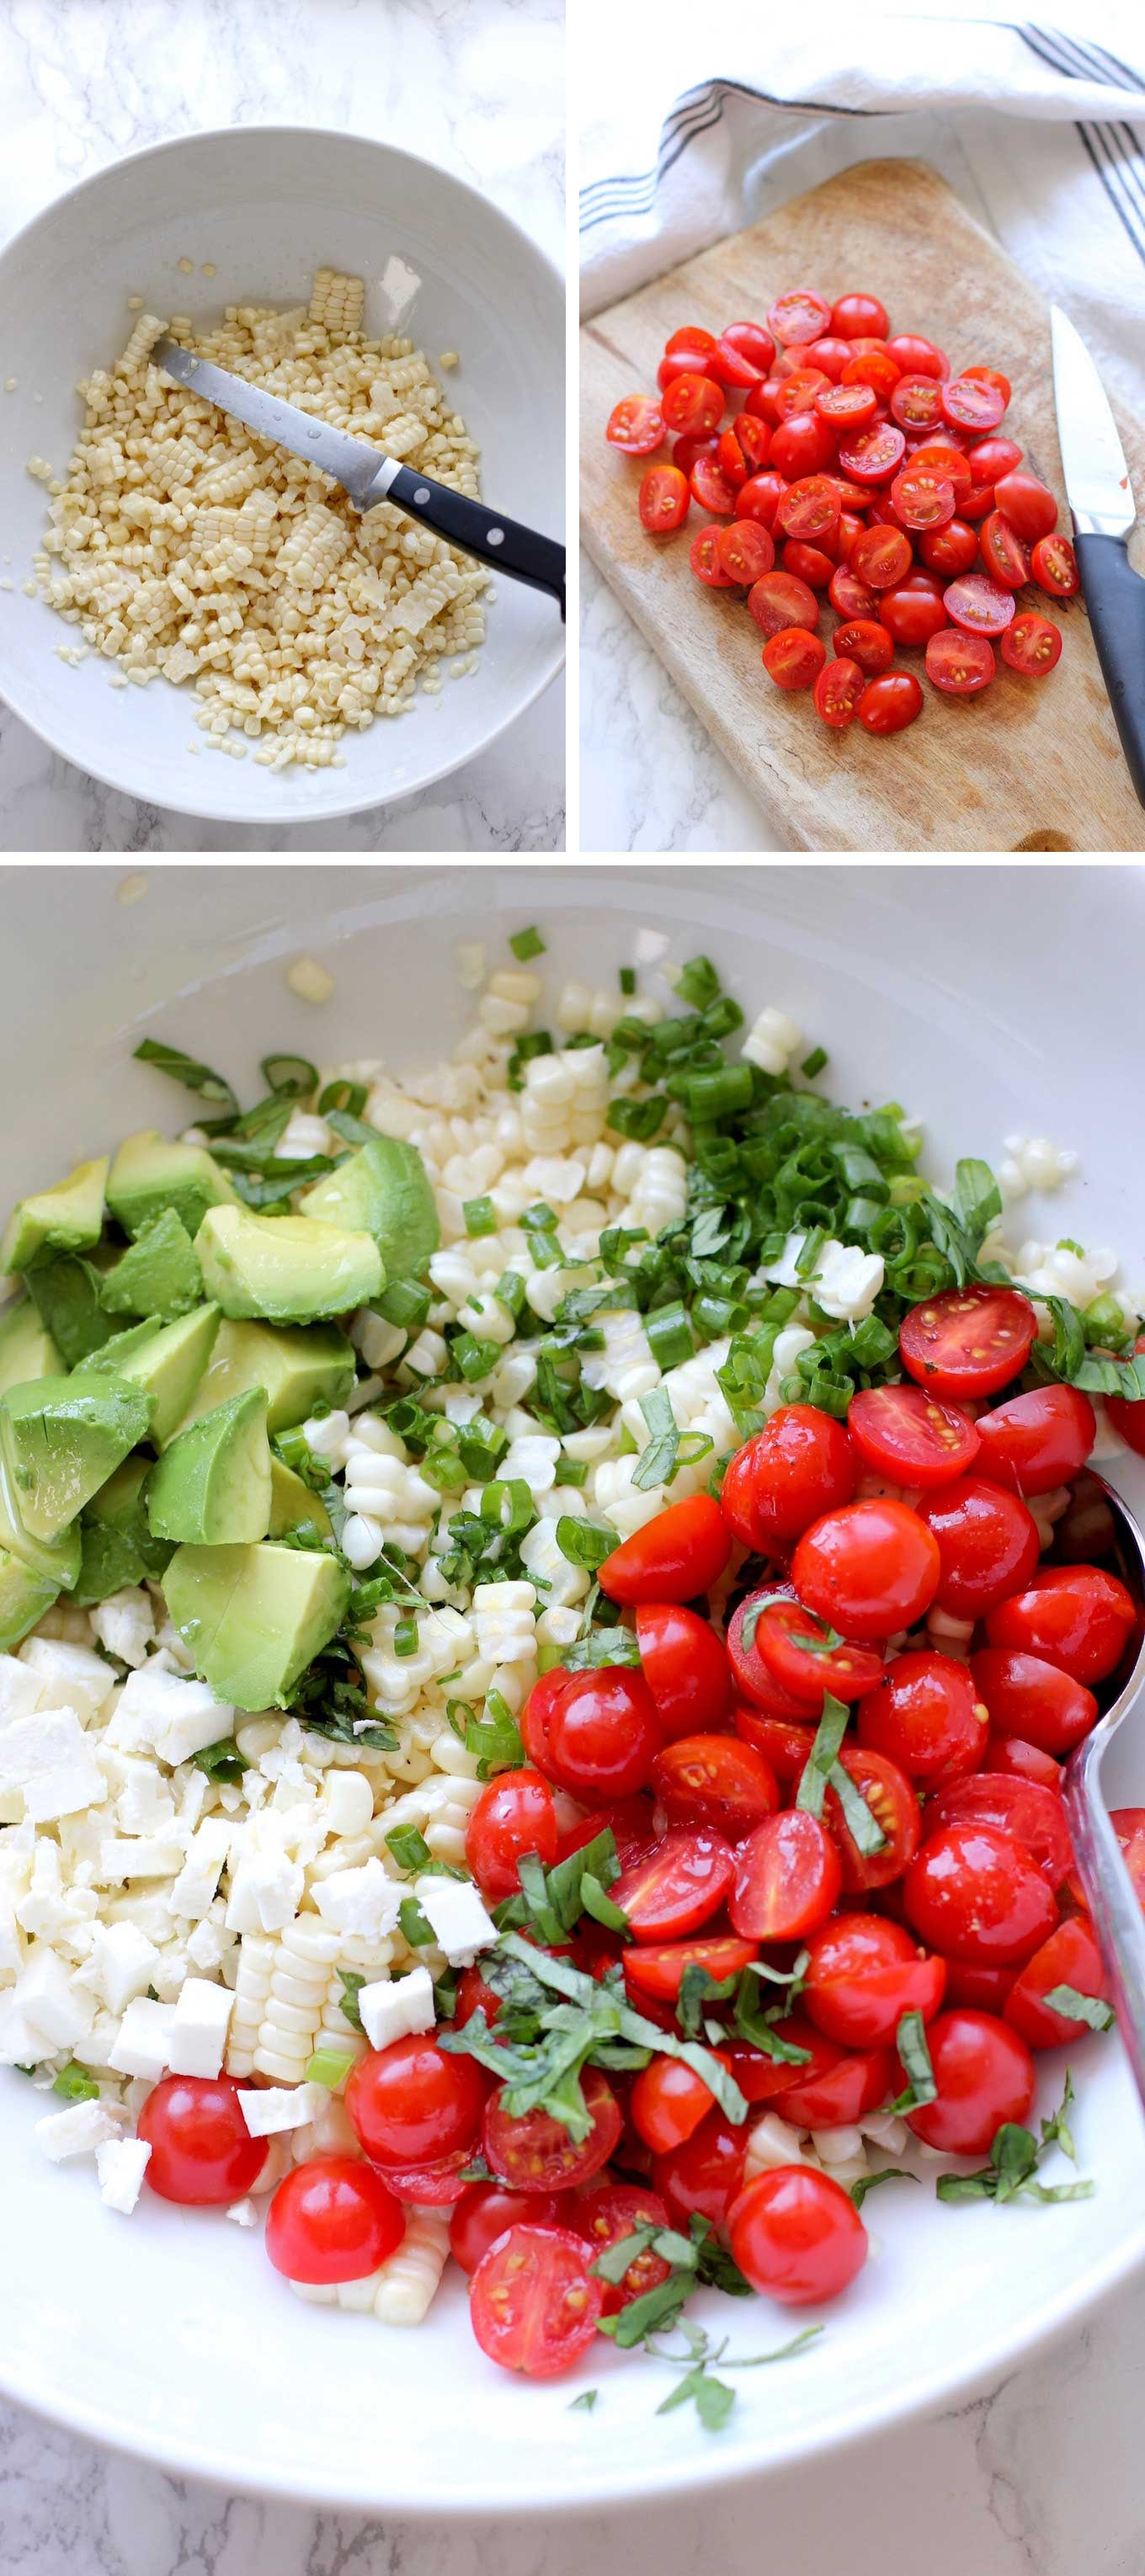 Fresh-Corn-Salad-With-Cherry-Tomatoes-And-Avocado-salad-before-being-tossed